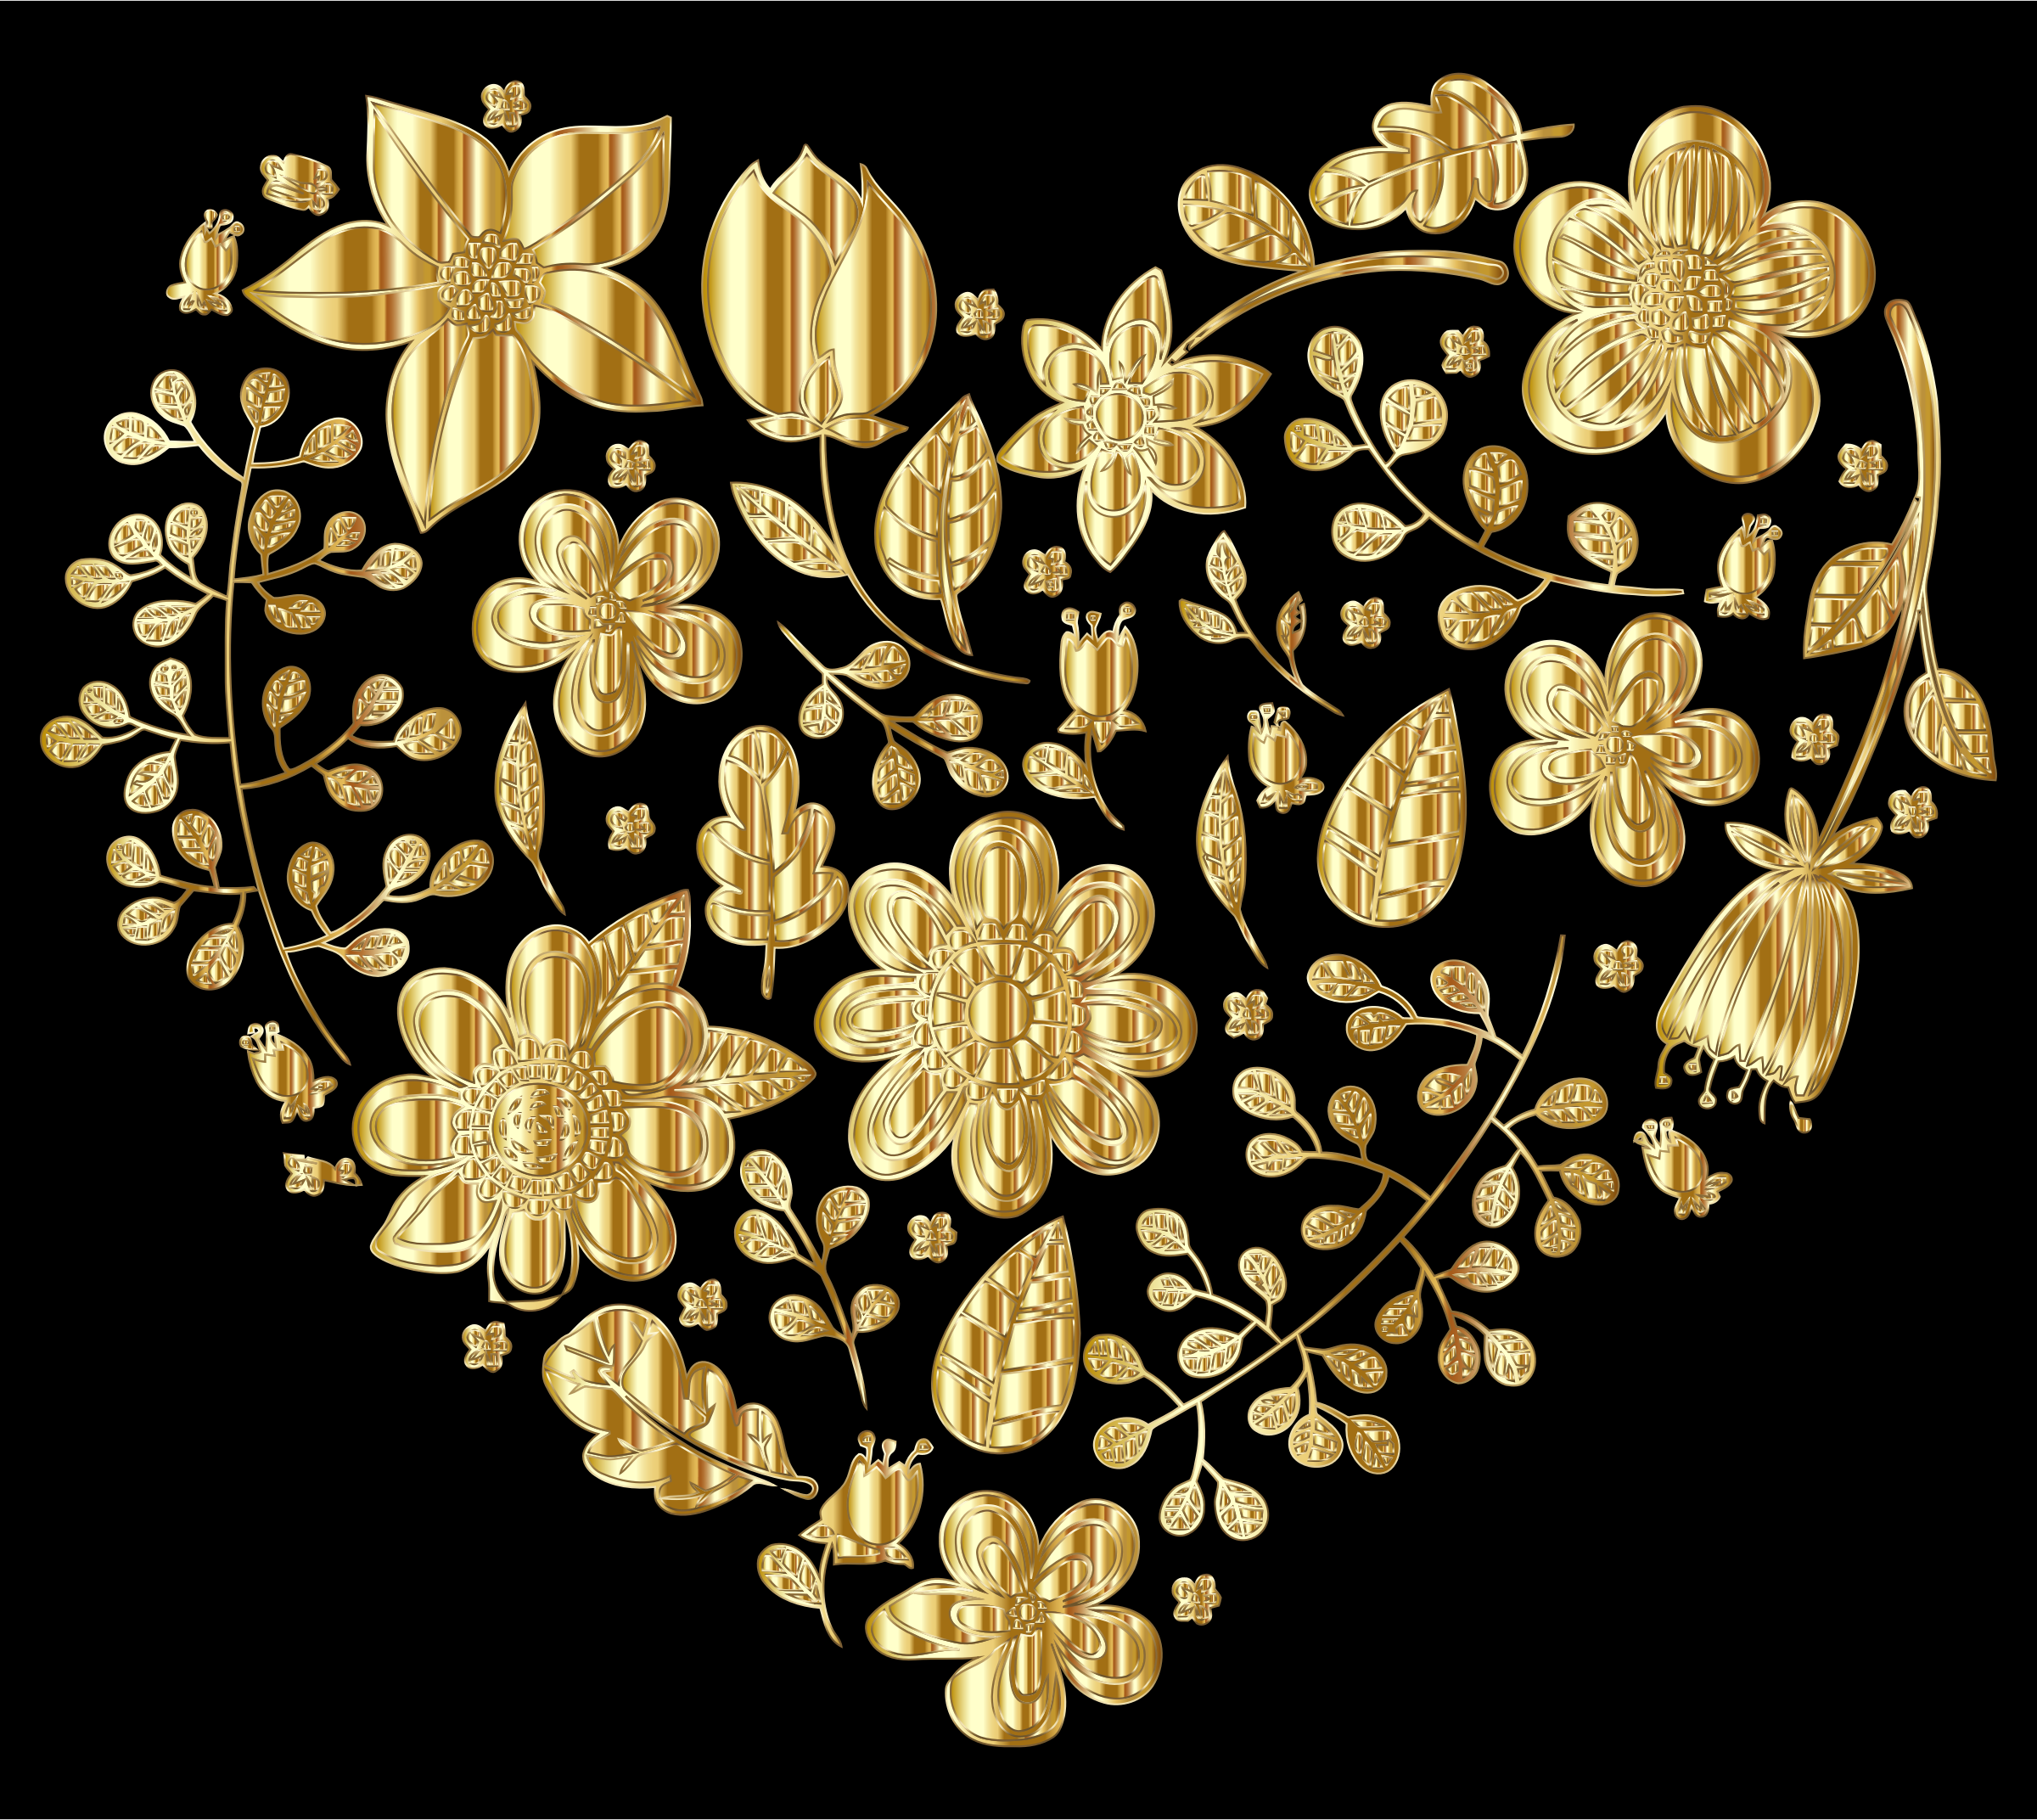 Gold Floral Heart Variation 2 by GDJ